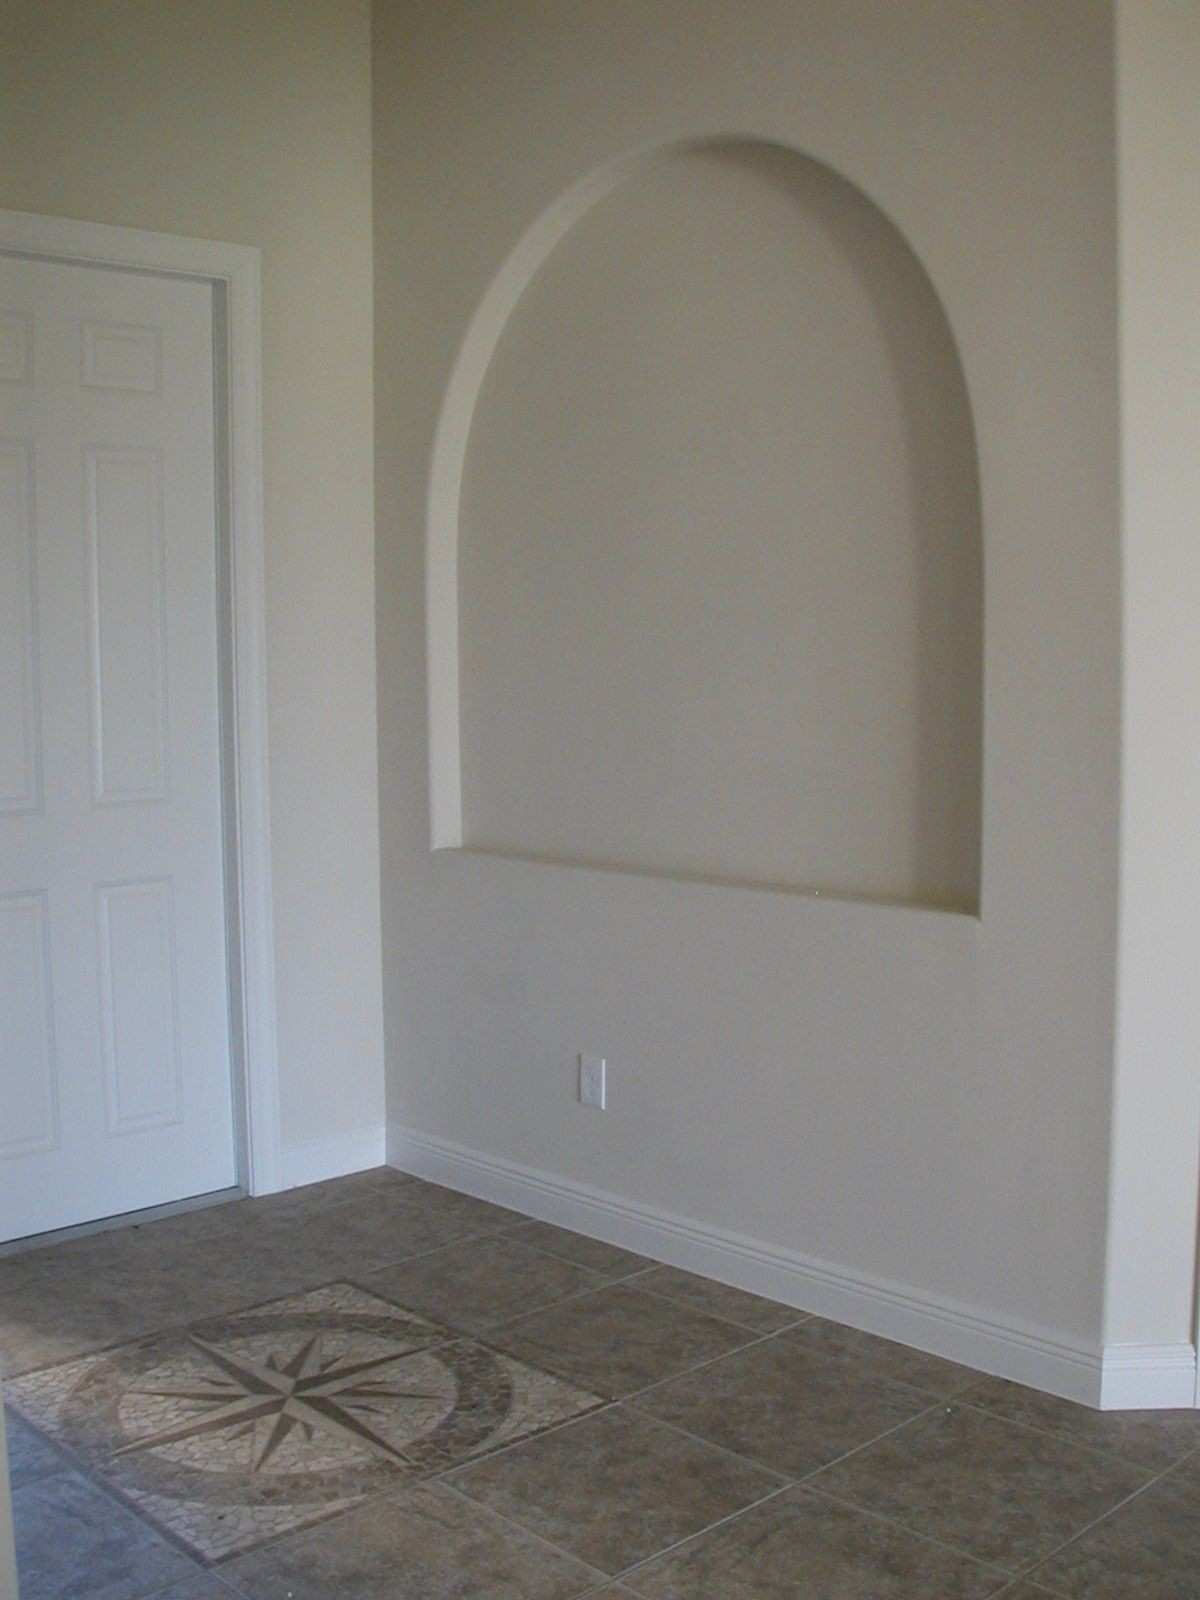 Wall Niche Decor Awesome Decorating Ideas For Niches Inspirational Decorative In Foyer